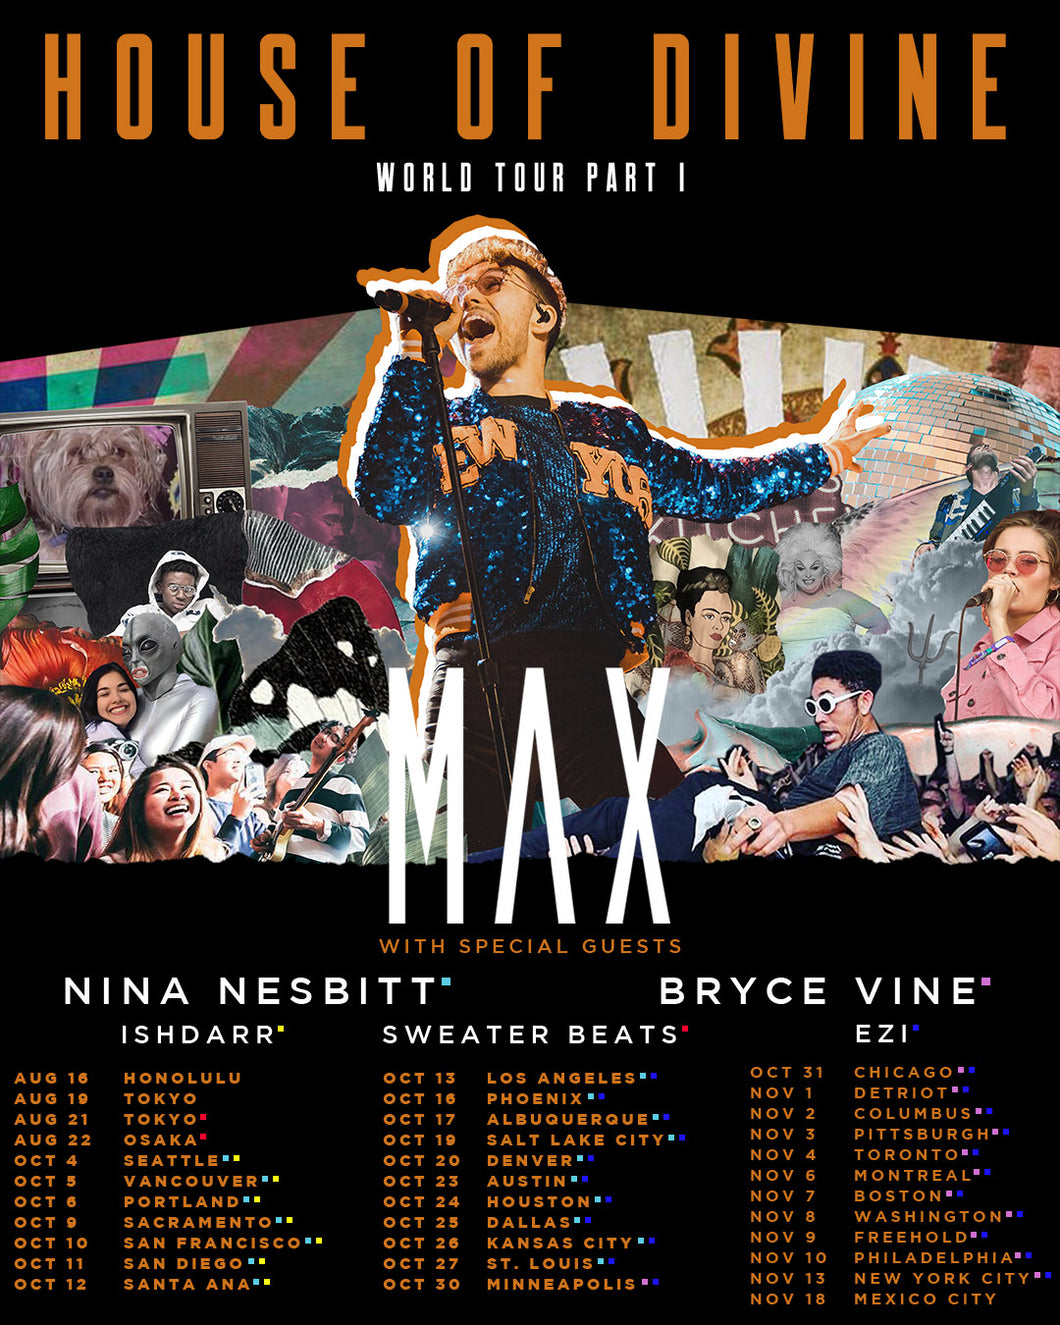 11/09/2018 - Freehold, NJ - iPlay America's Event Center MAX Ticketless VIP Upgrade